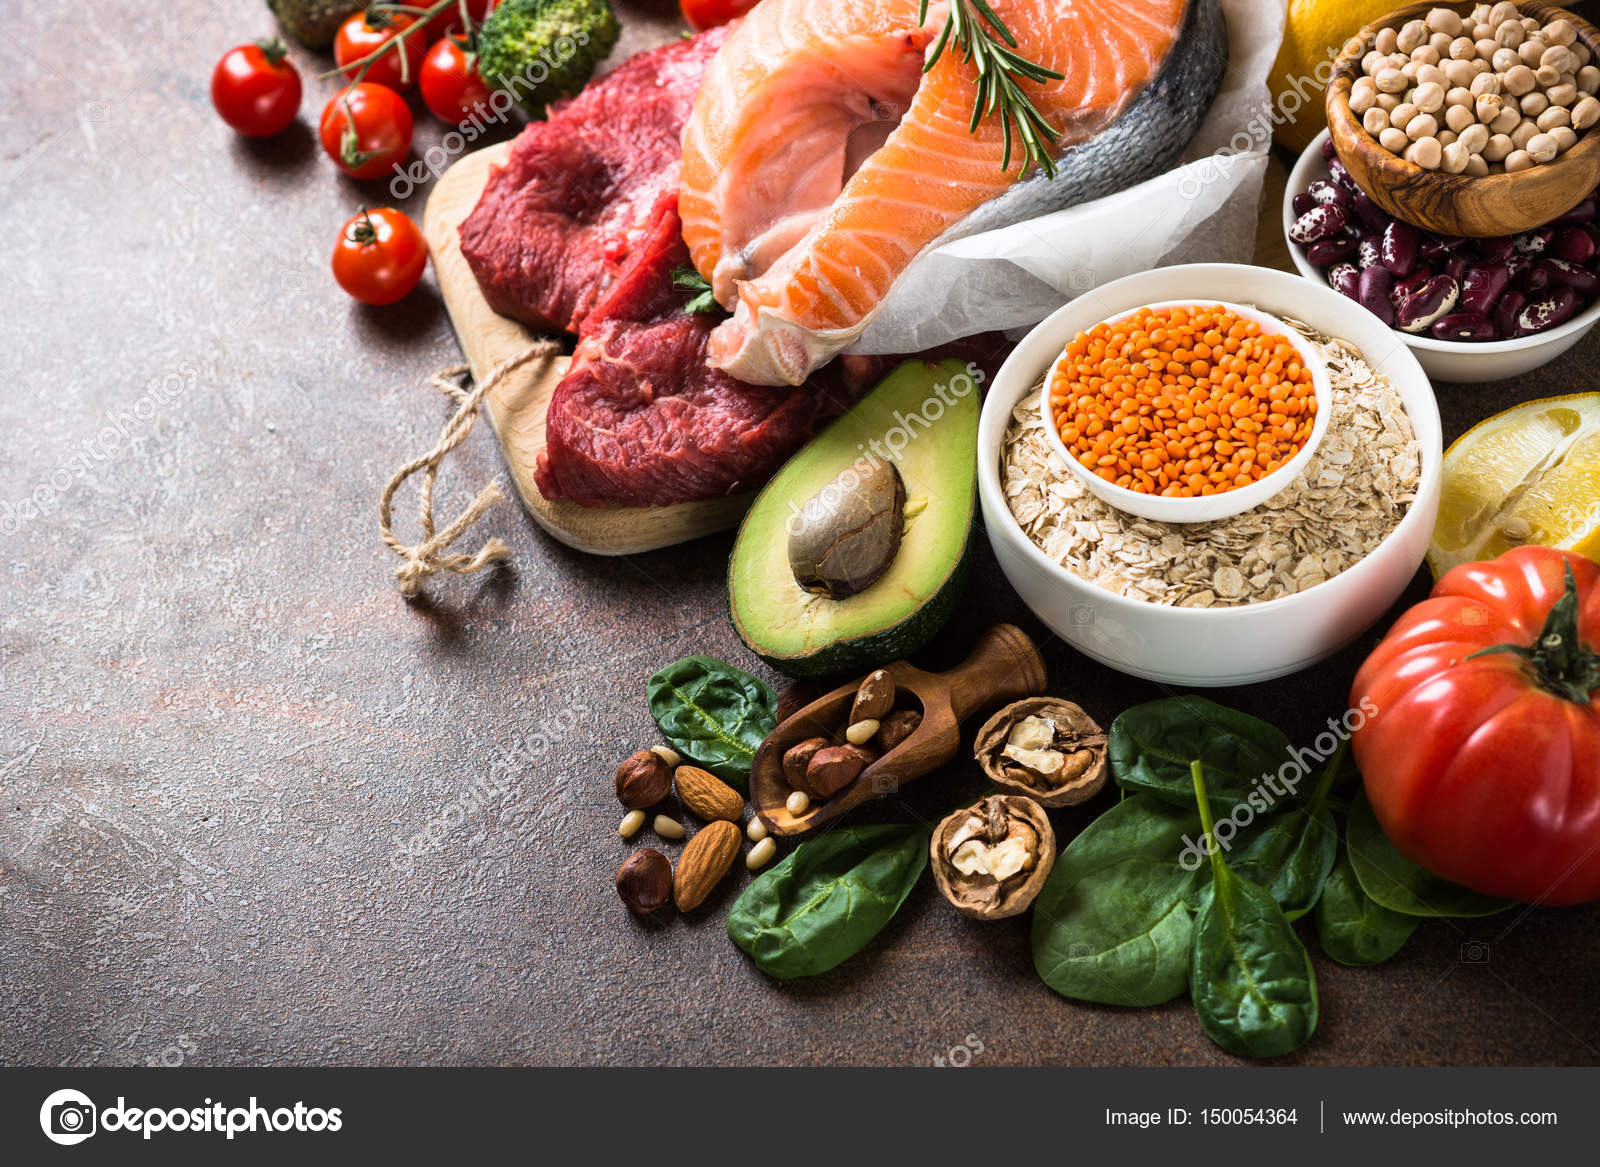 Healthy eating food platenutrition balanceHealthy eating food platehealthy  nutrition balance diagram- CanStock